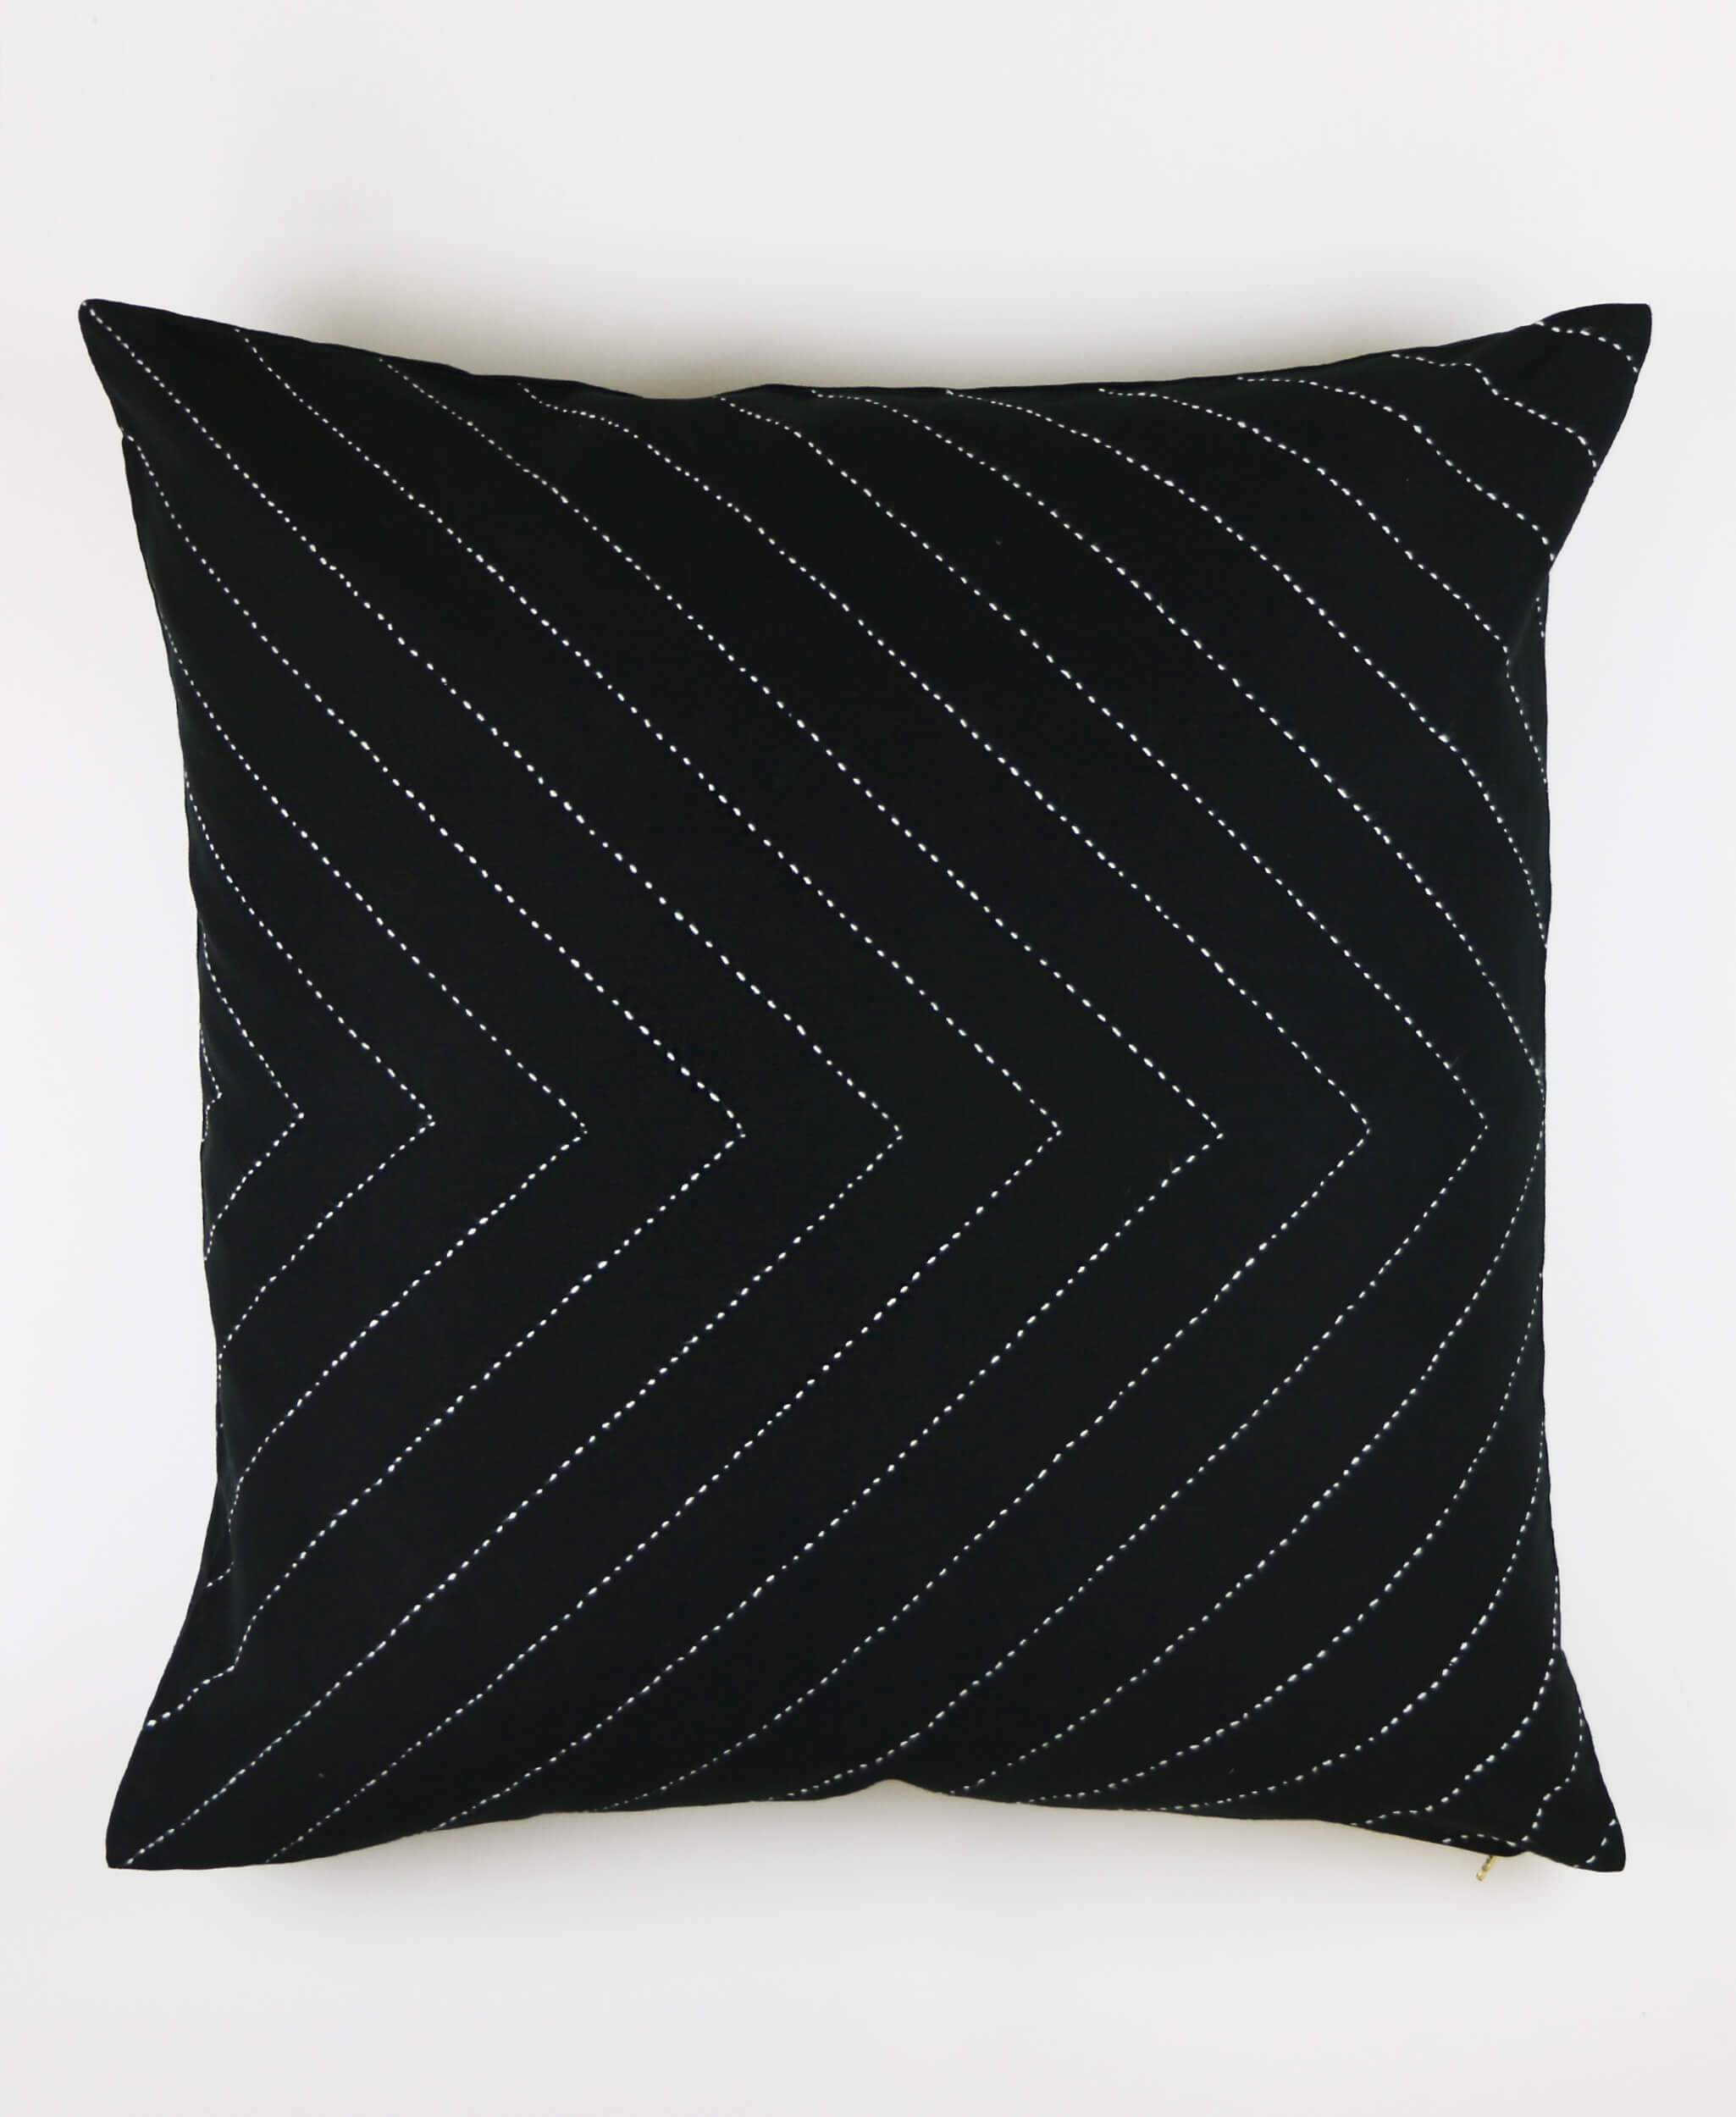 Charcoal Arrow Stitch Throw Pillow Cover